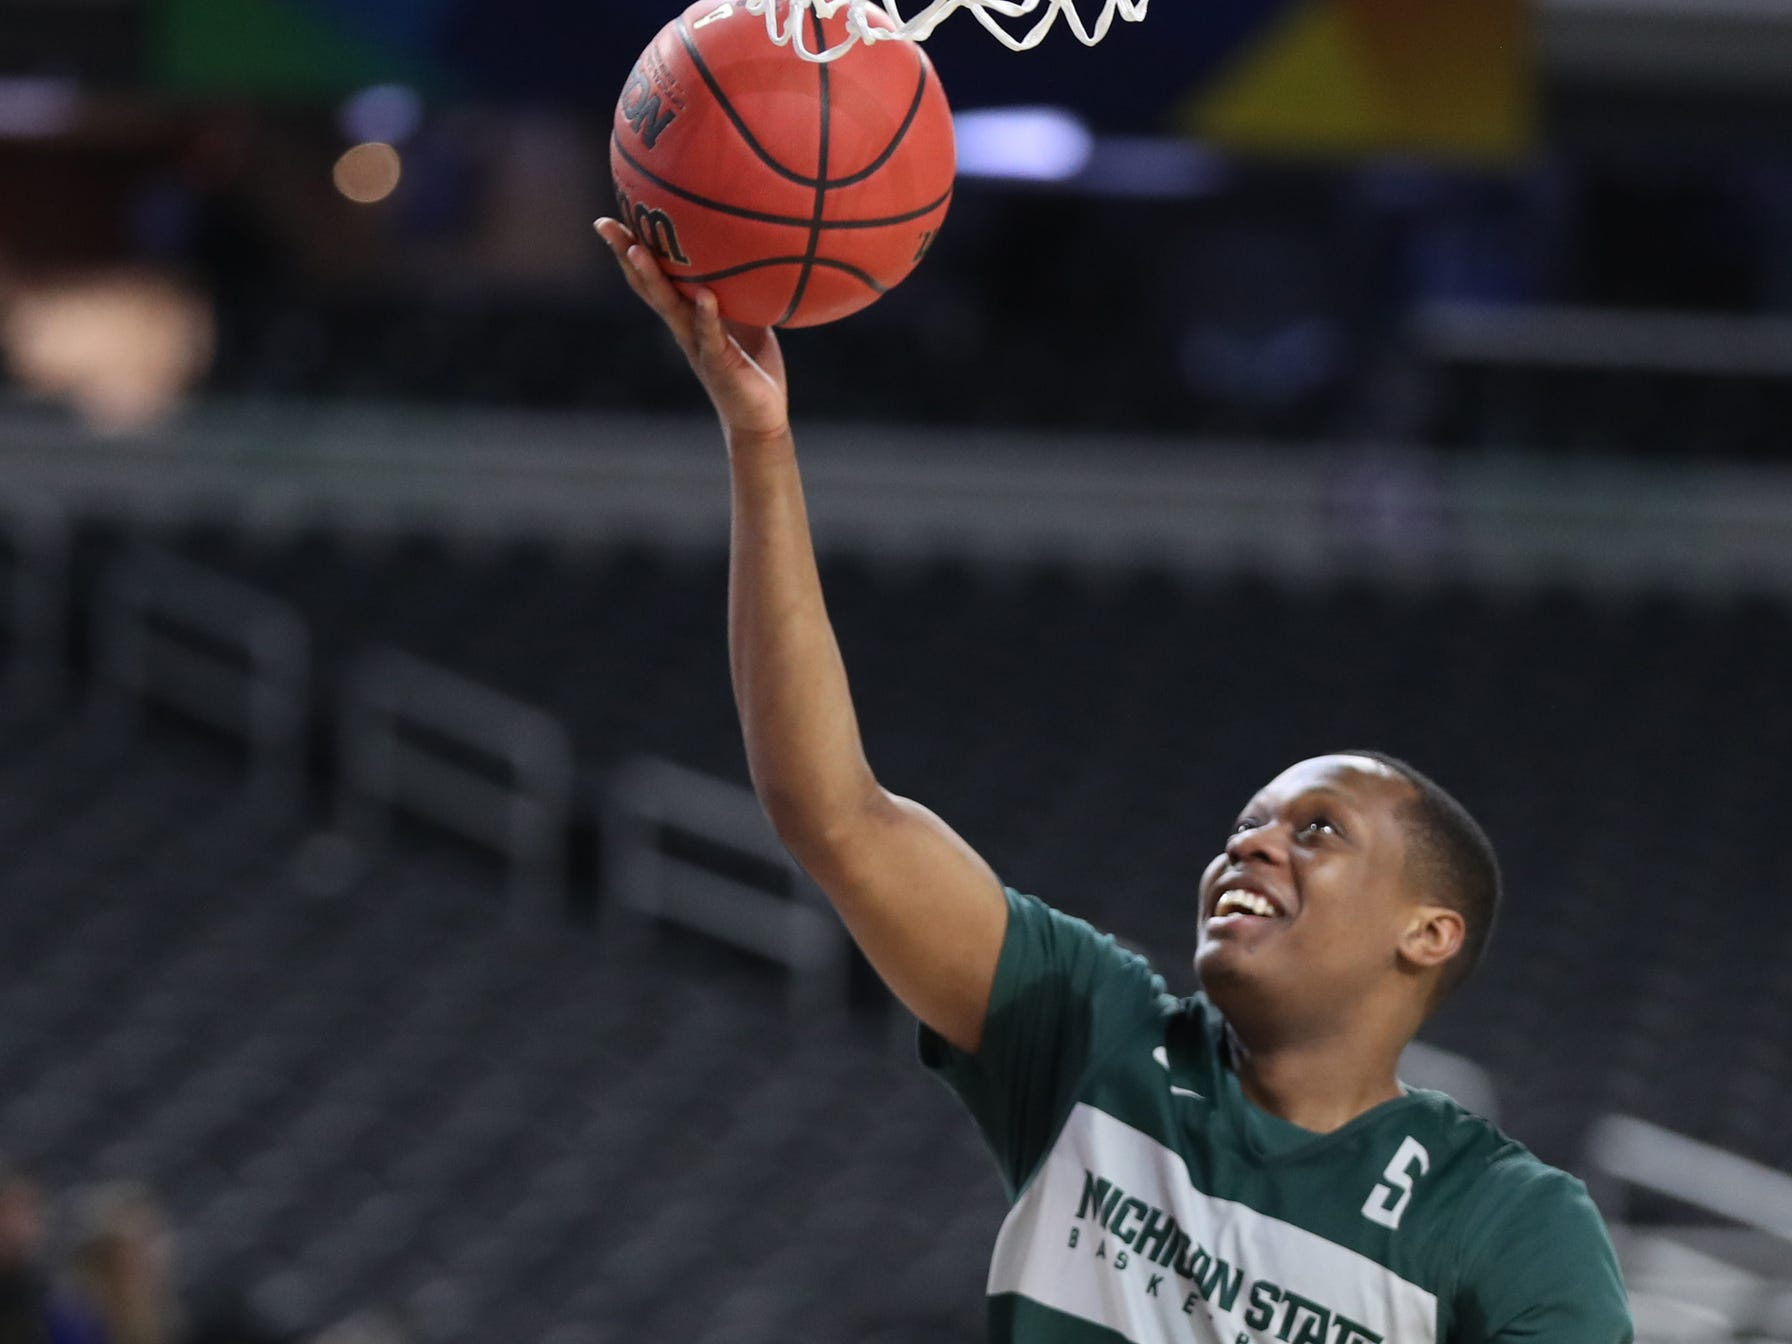 Michigan State guard Cassius Winston goes through drills during practice for their NCAA Semifinal game against Texas Tech Friday, April 5, 2019 at U.S. Bank Stadium in Minneapolis, Minn.